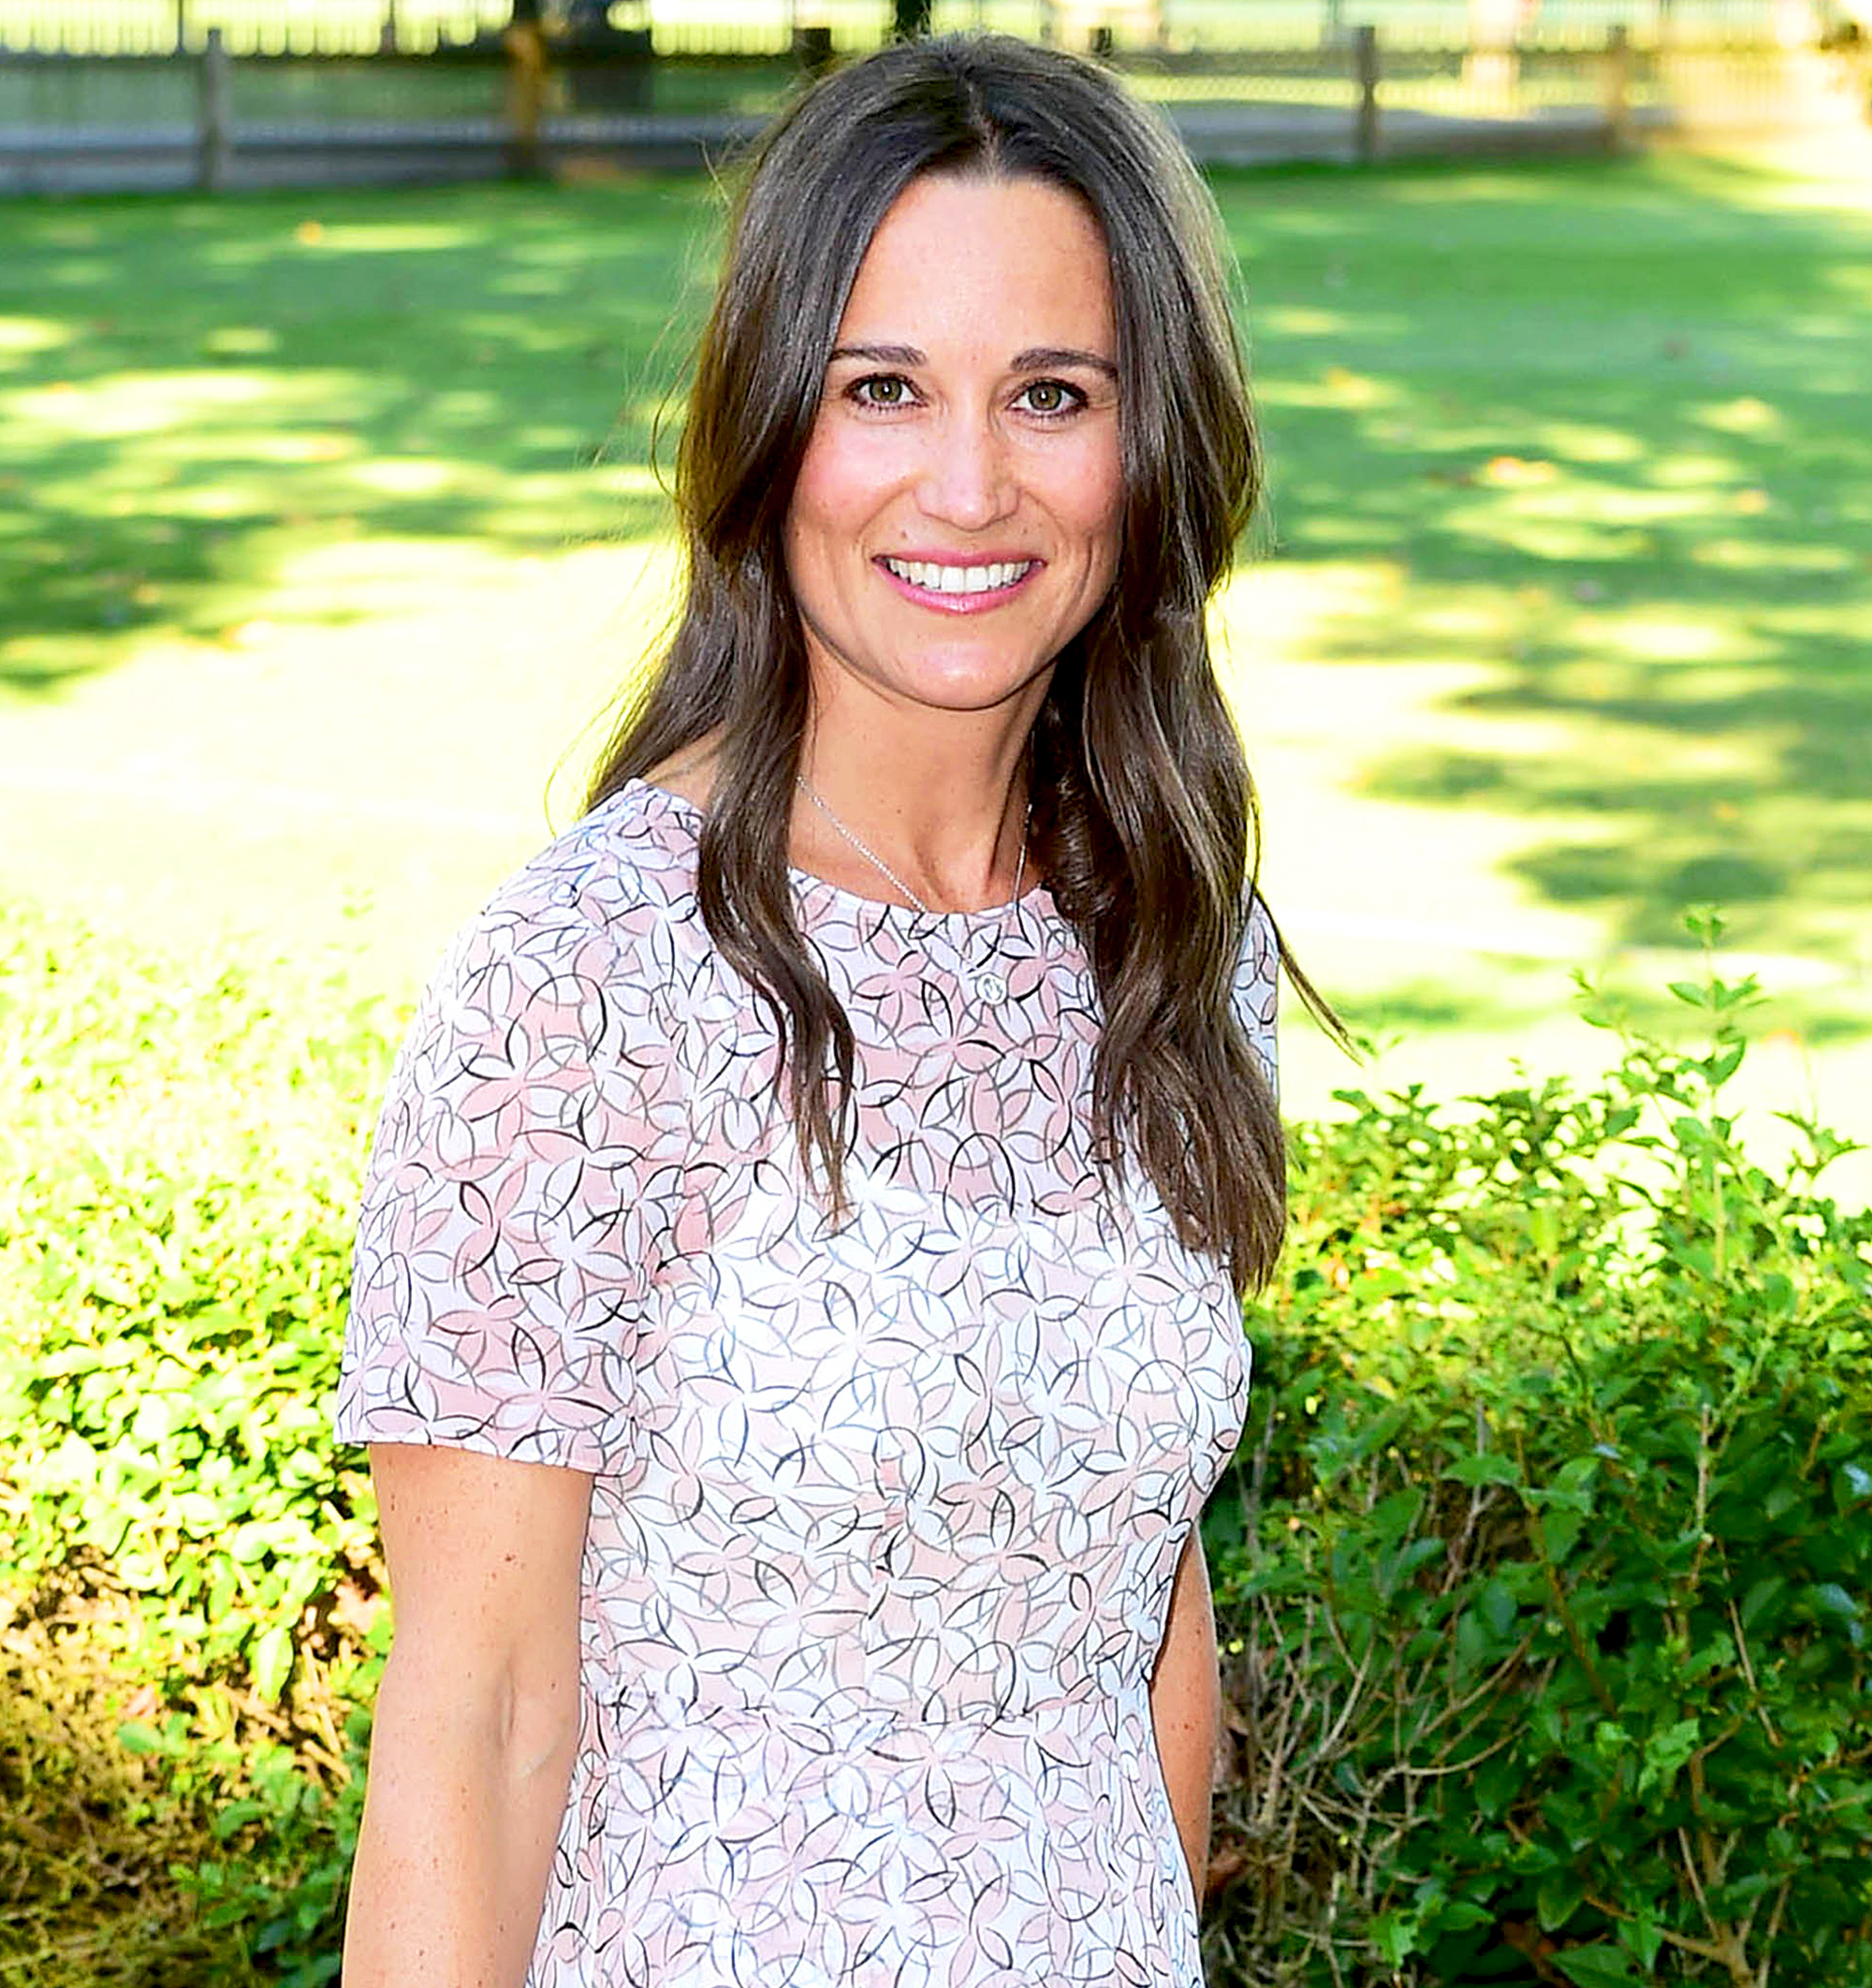 Pippa Middleton Confirms Pregnancy With Husband James Matthews